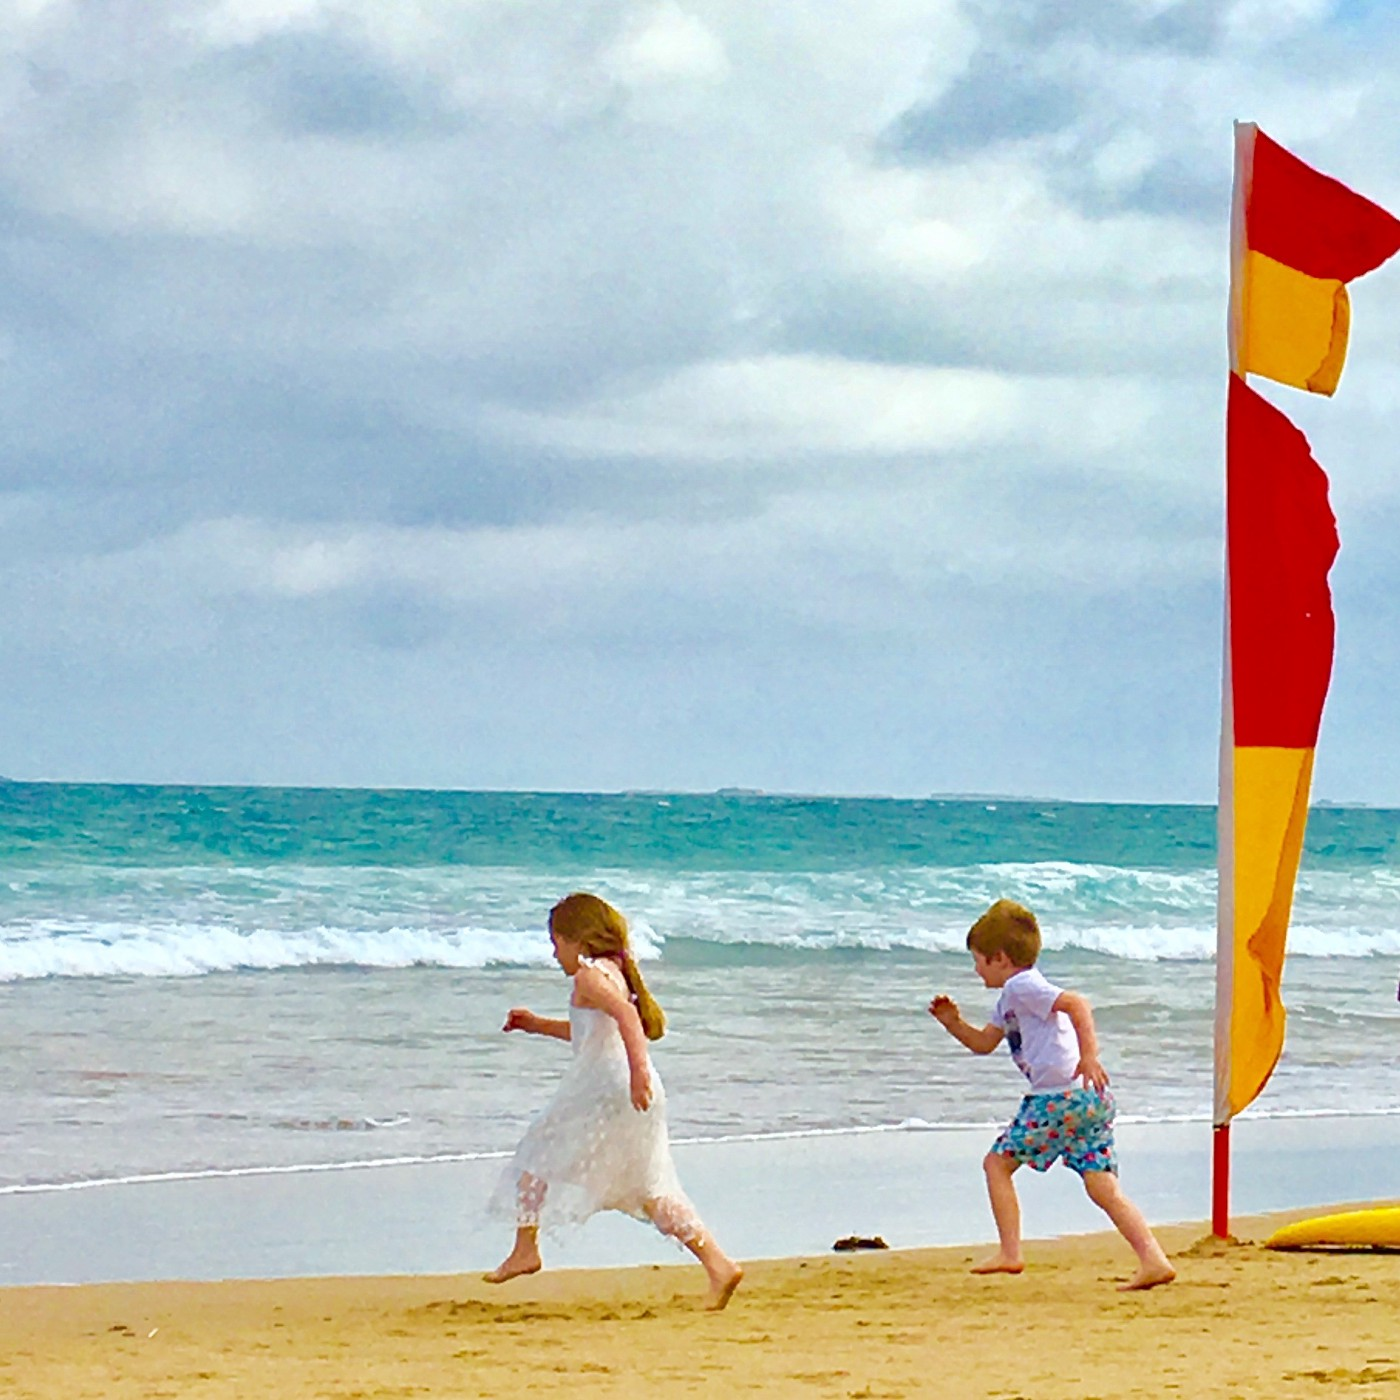 Children playing freely on the beach